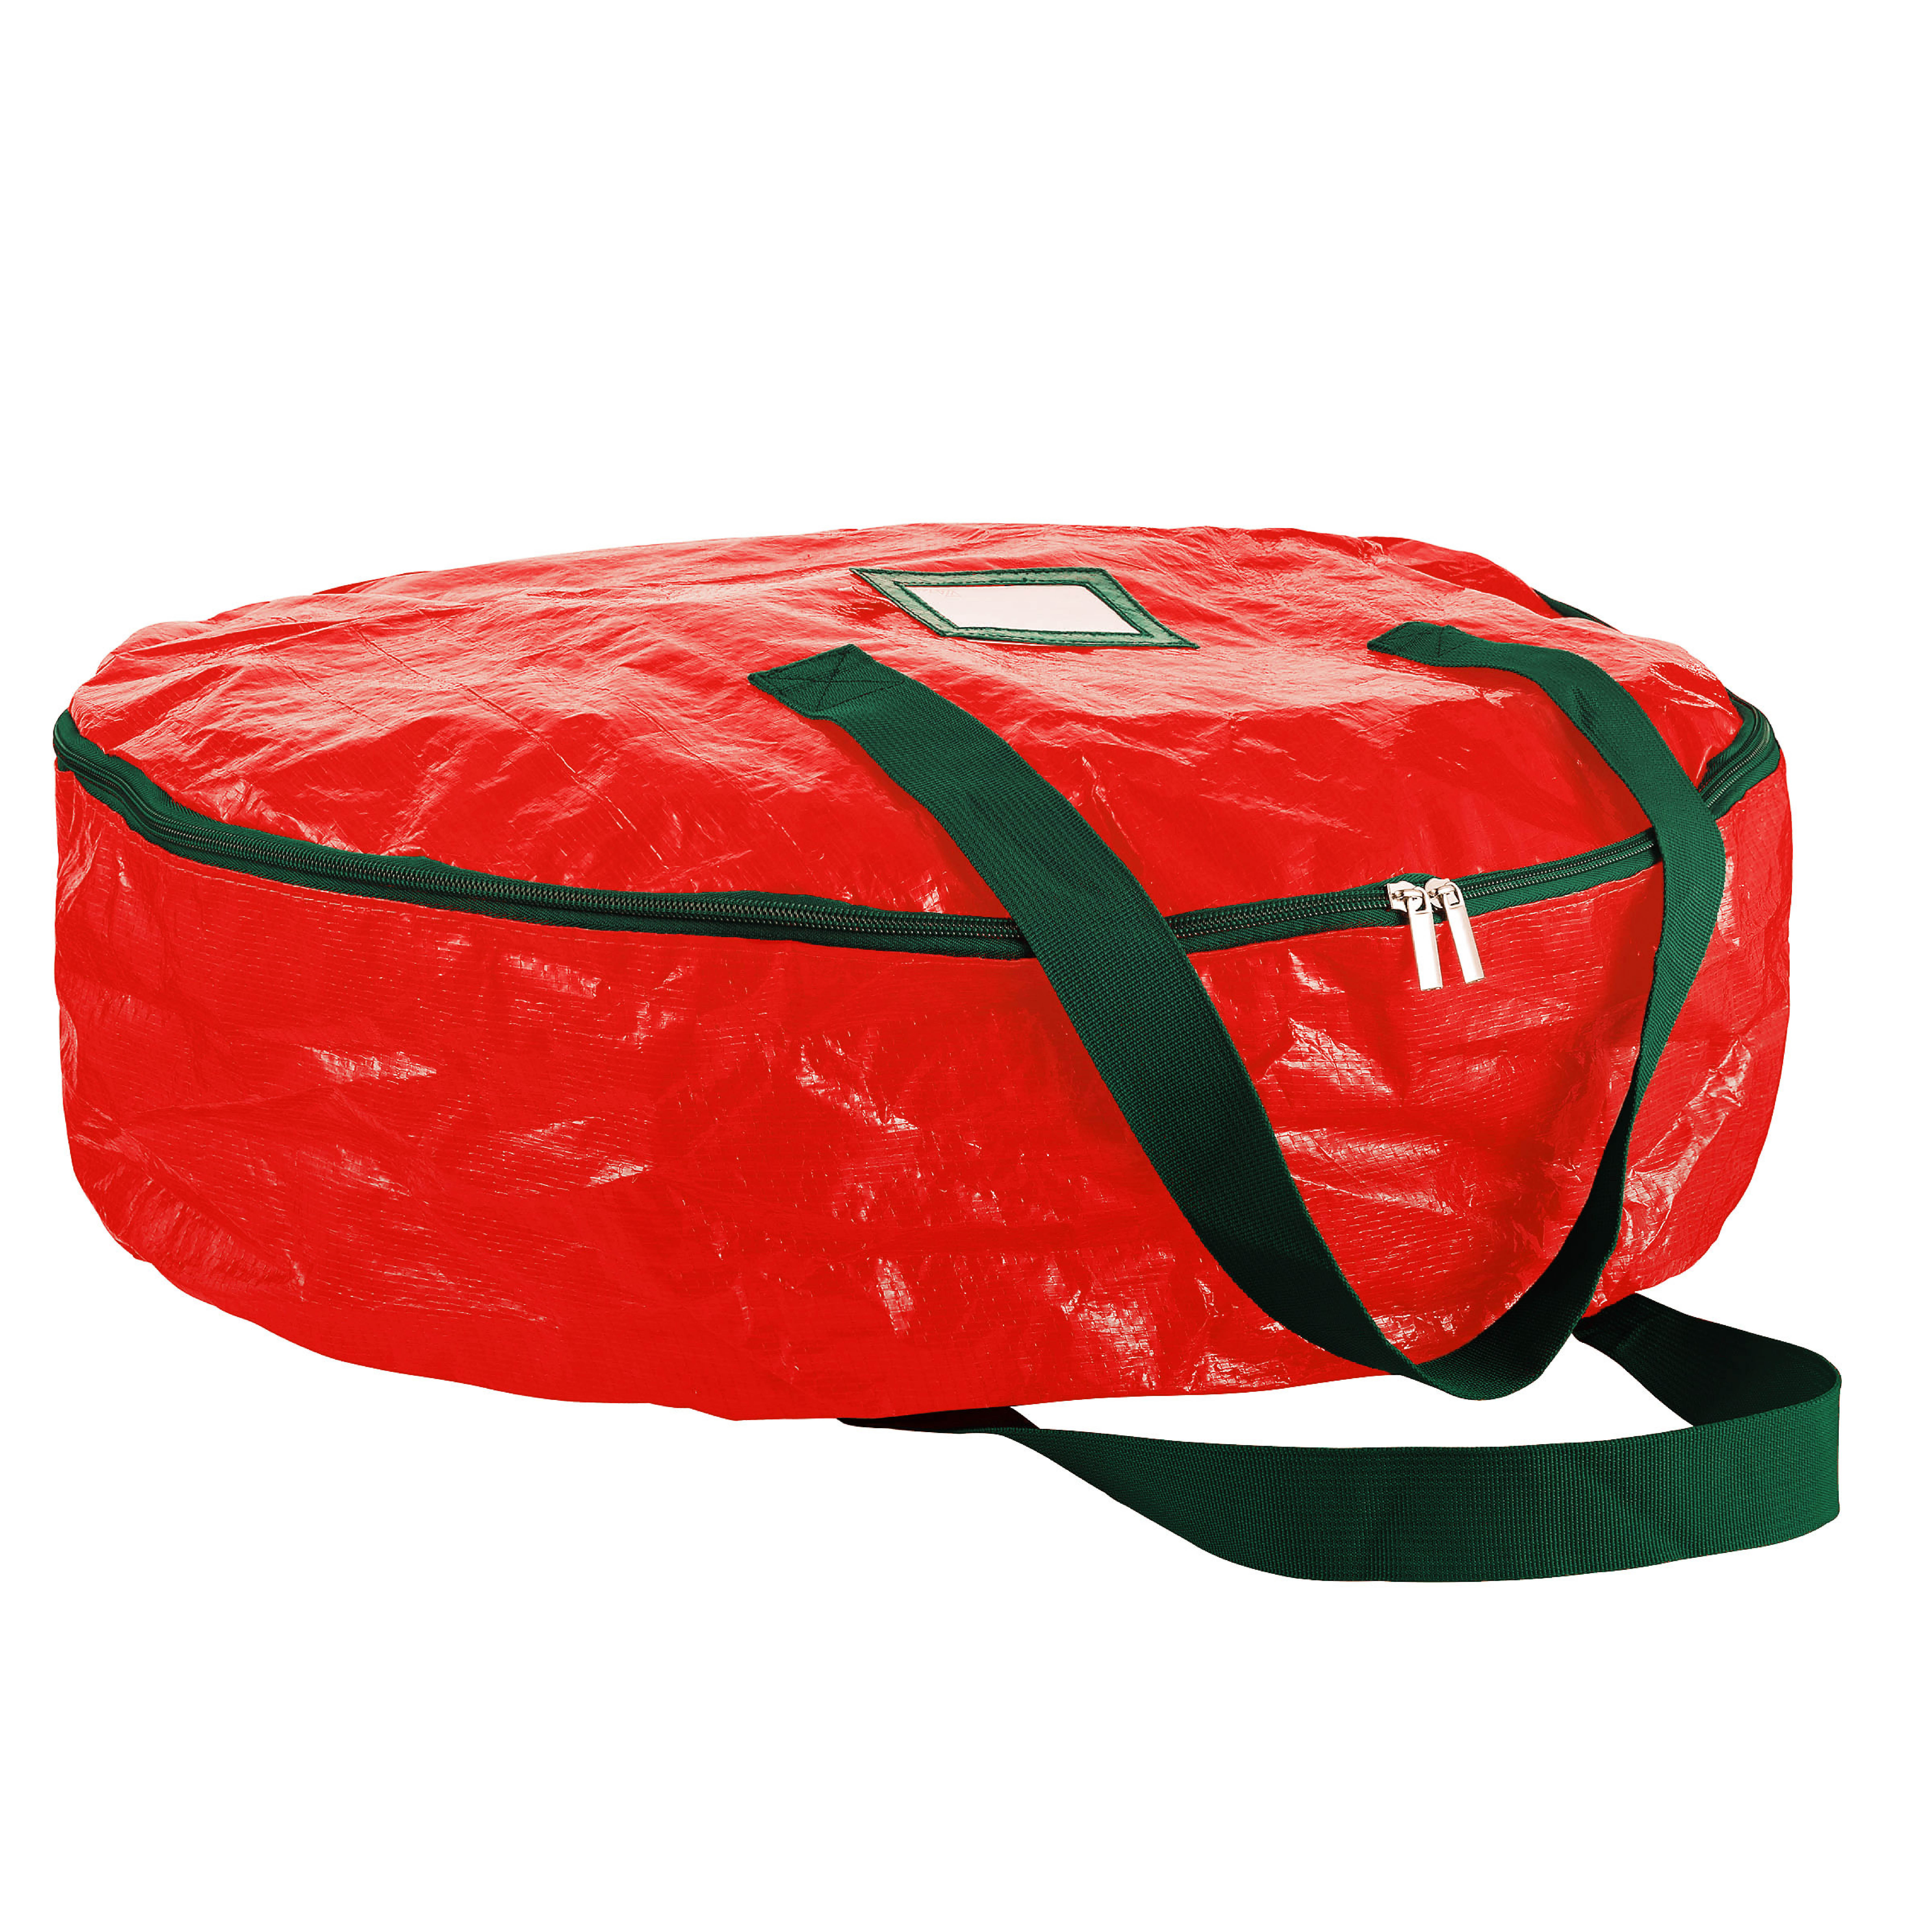 Premium Holiday Storage Bag For Chrismtas 30 in. Wreath (Red)